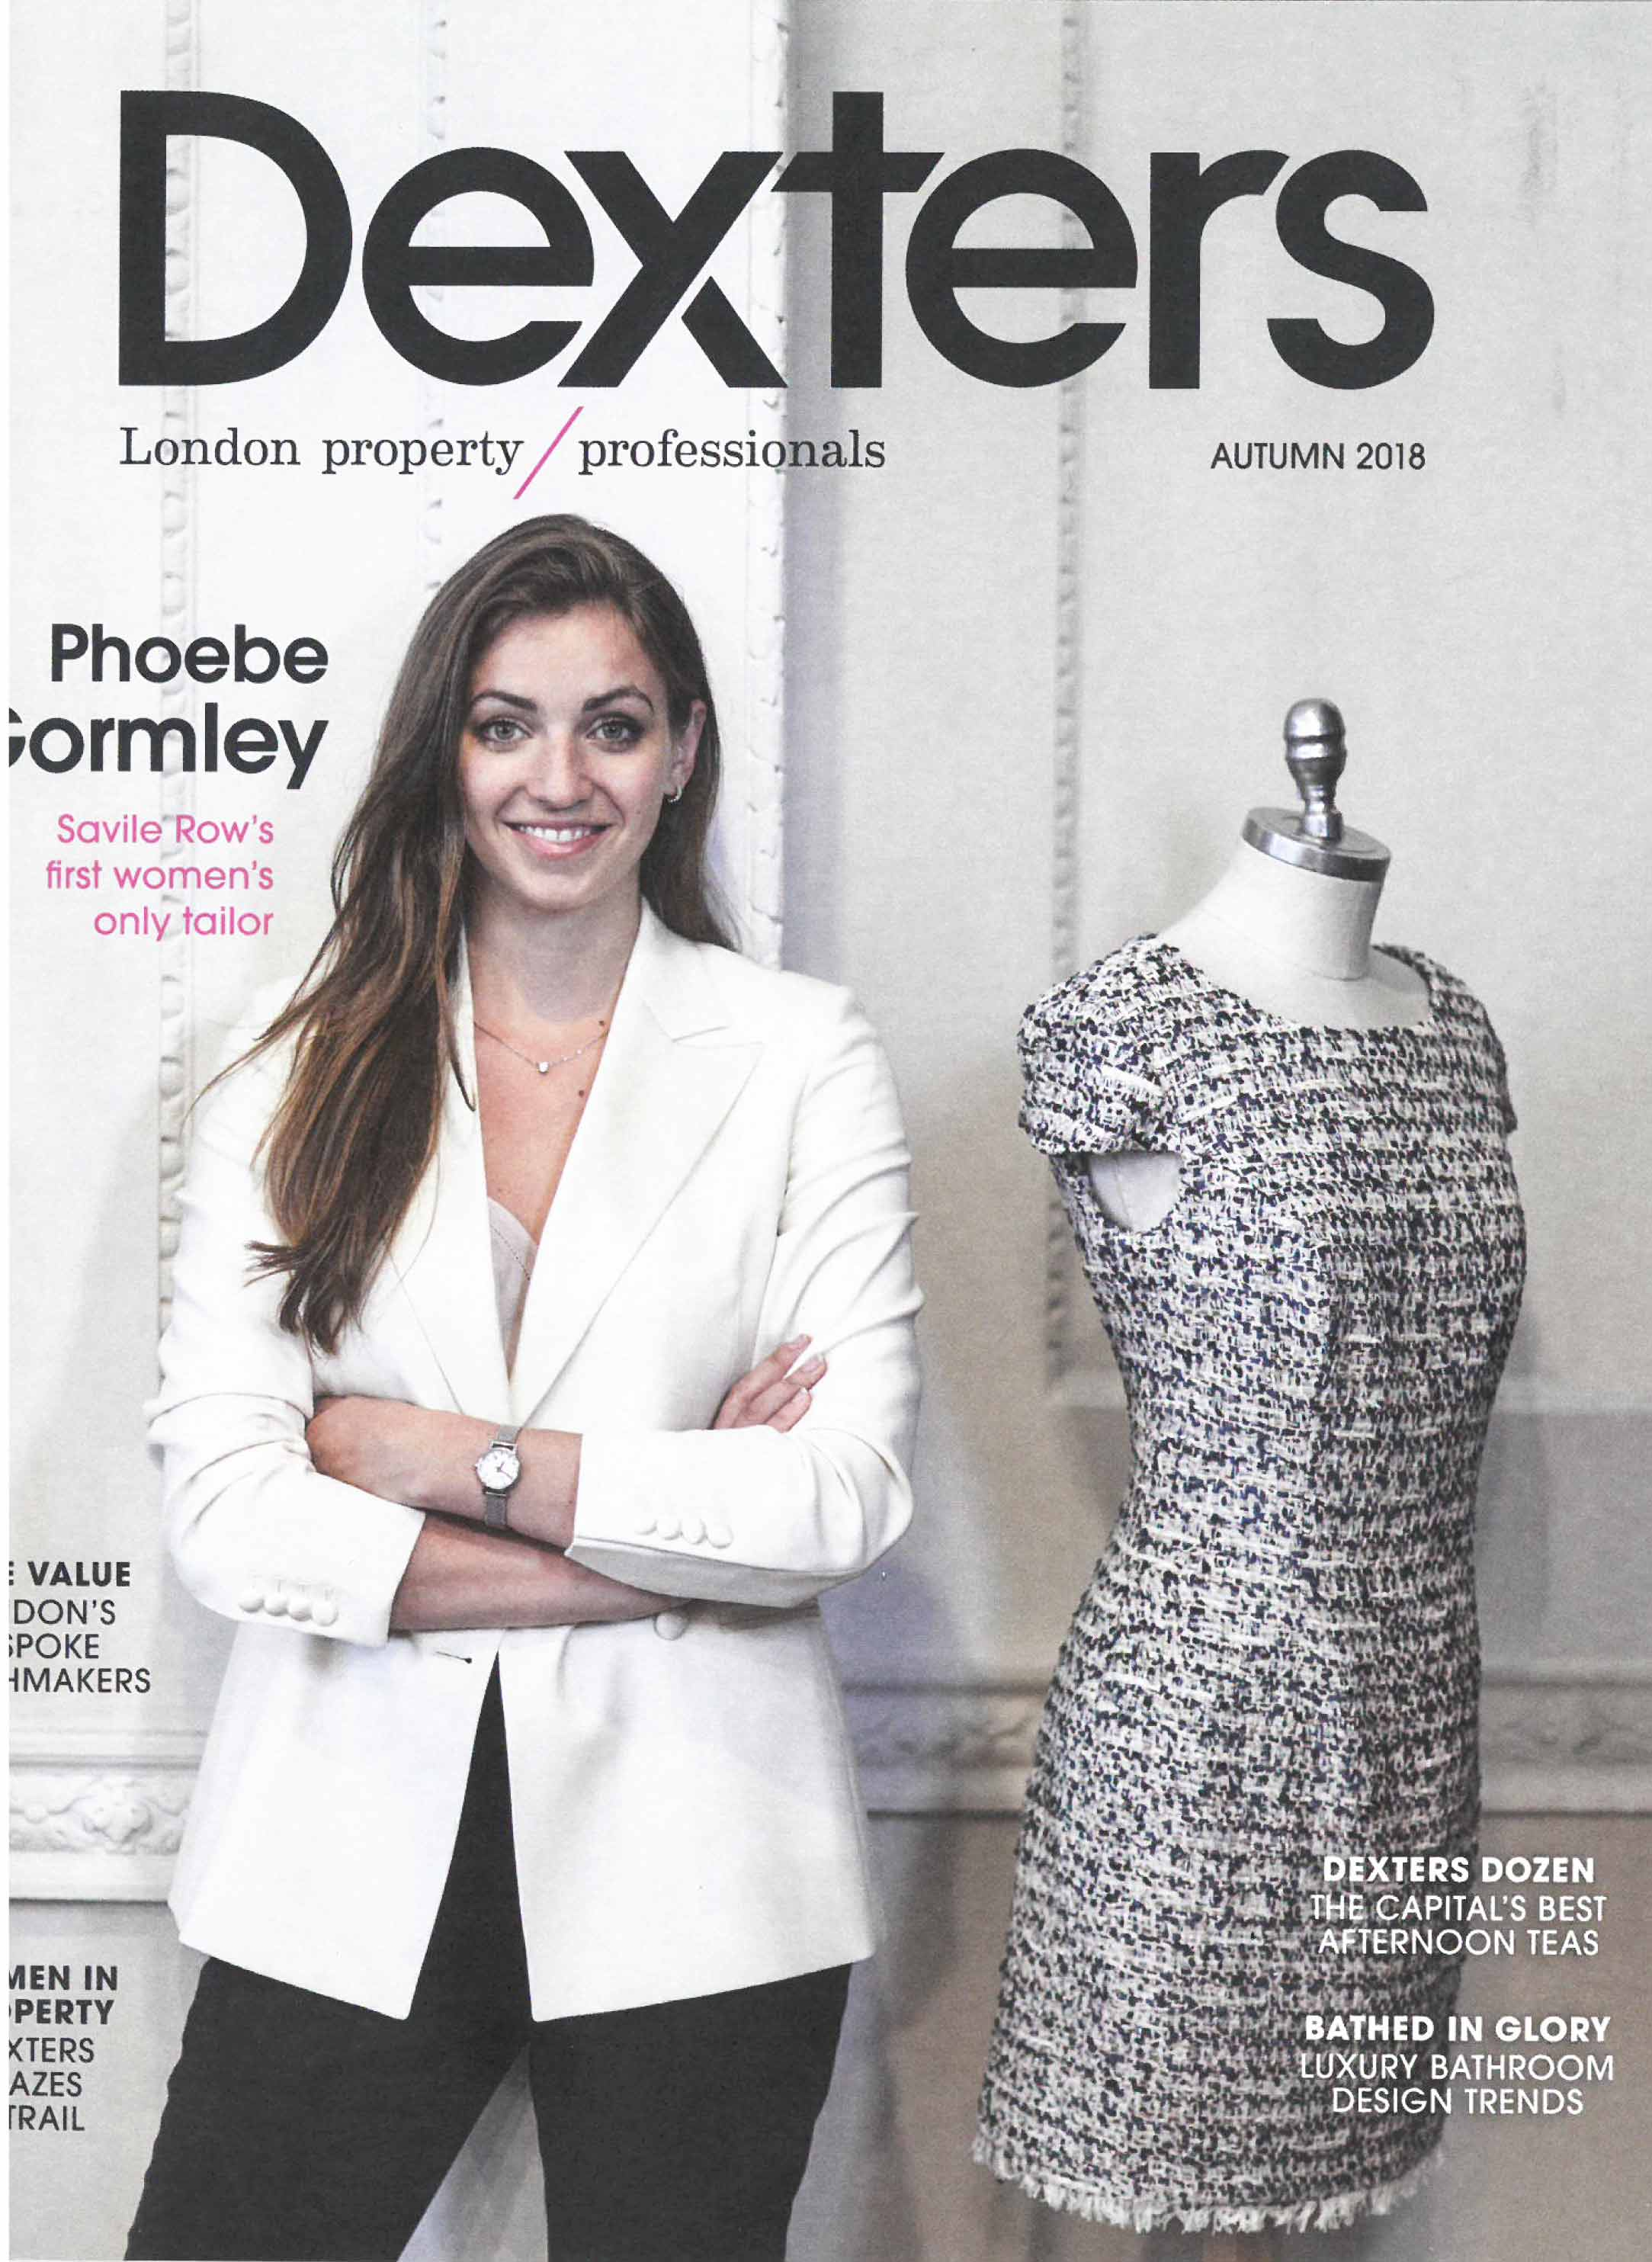 House of Backes & Strauss luxury brand featured in Dexters